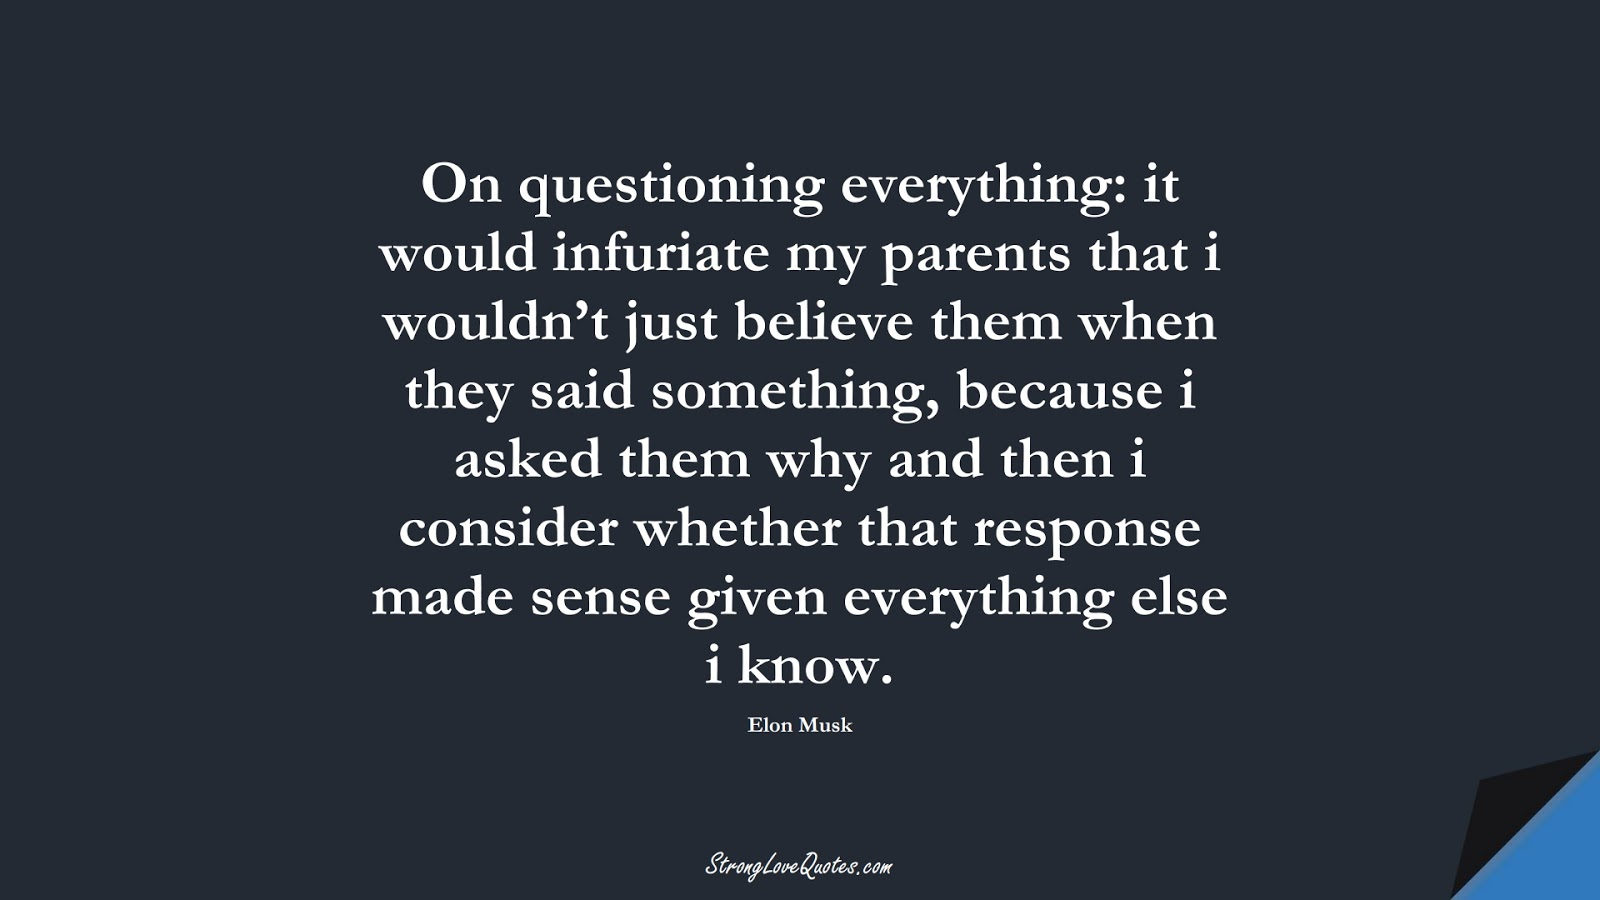 On questioning everything: it would infuriate my parents that i wouldn't just believe them when they said something, because i asked them why and then i consider whether that response made sense given everything else i know. (Elon Musk);  #EducationQuotes